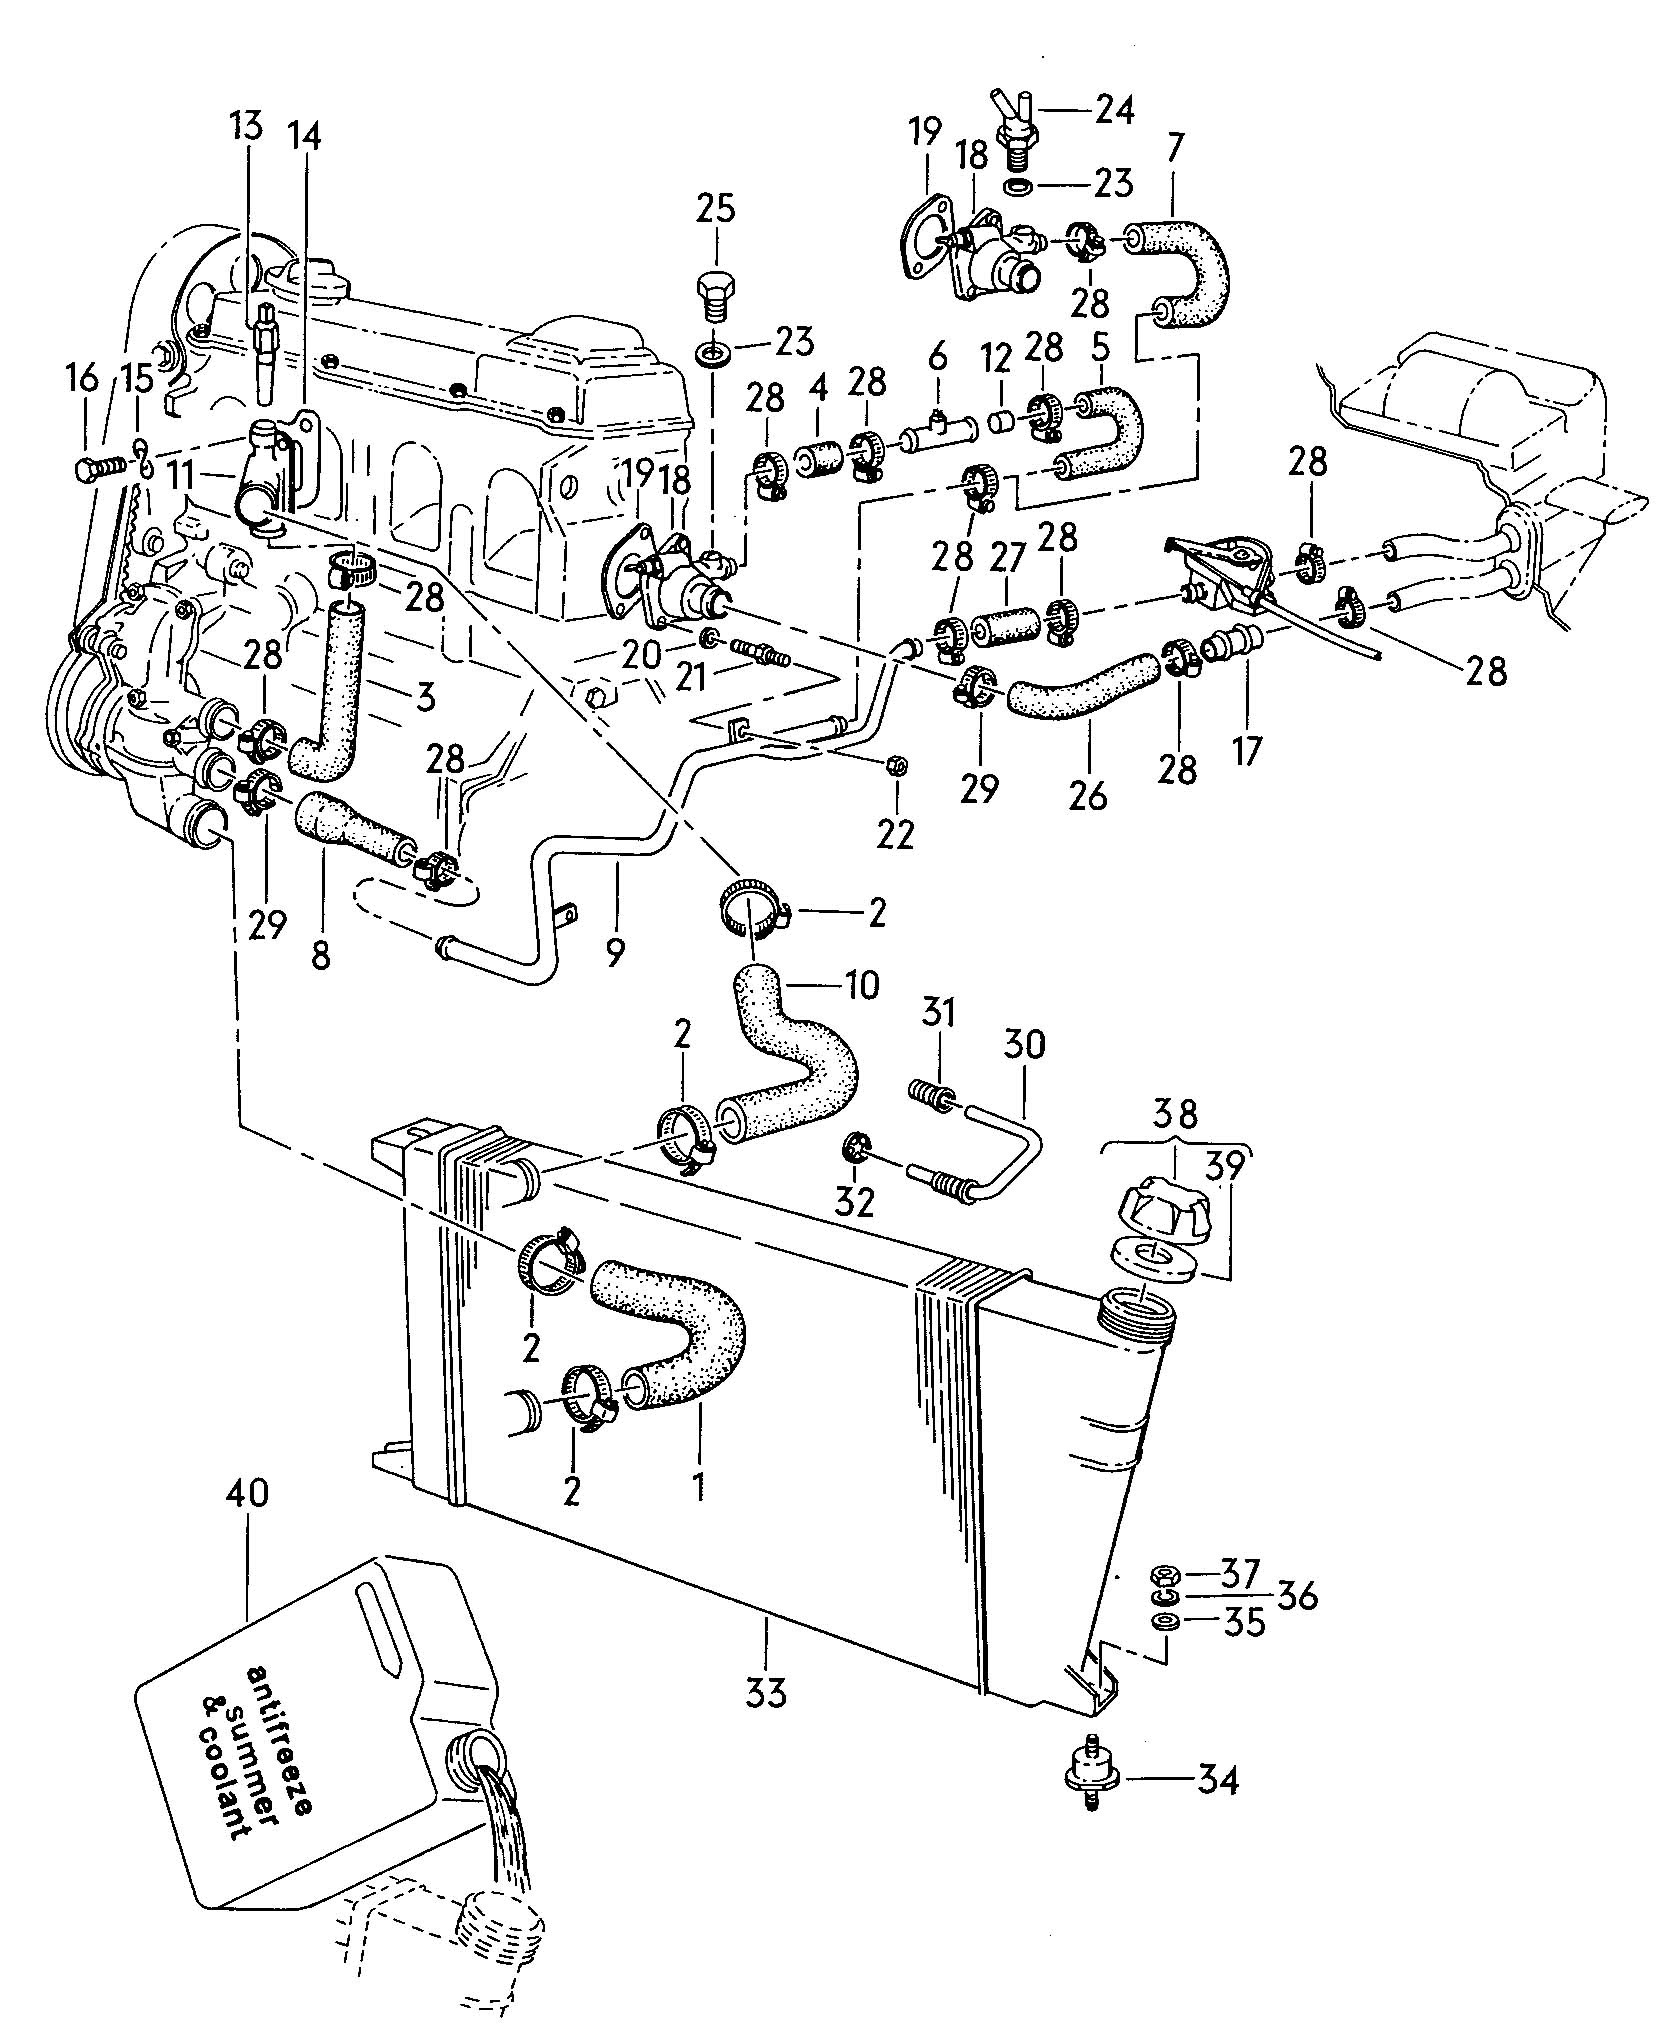 Bestseller: Toyota 2kd Engine Repair Manual Pdf